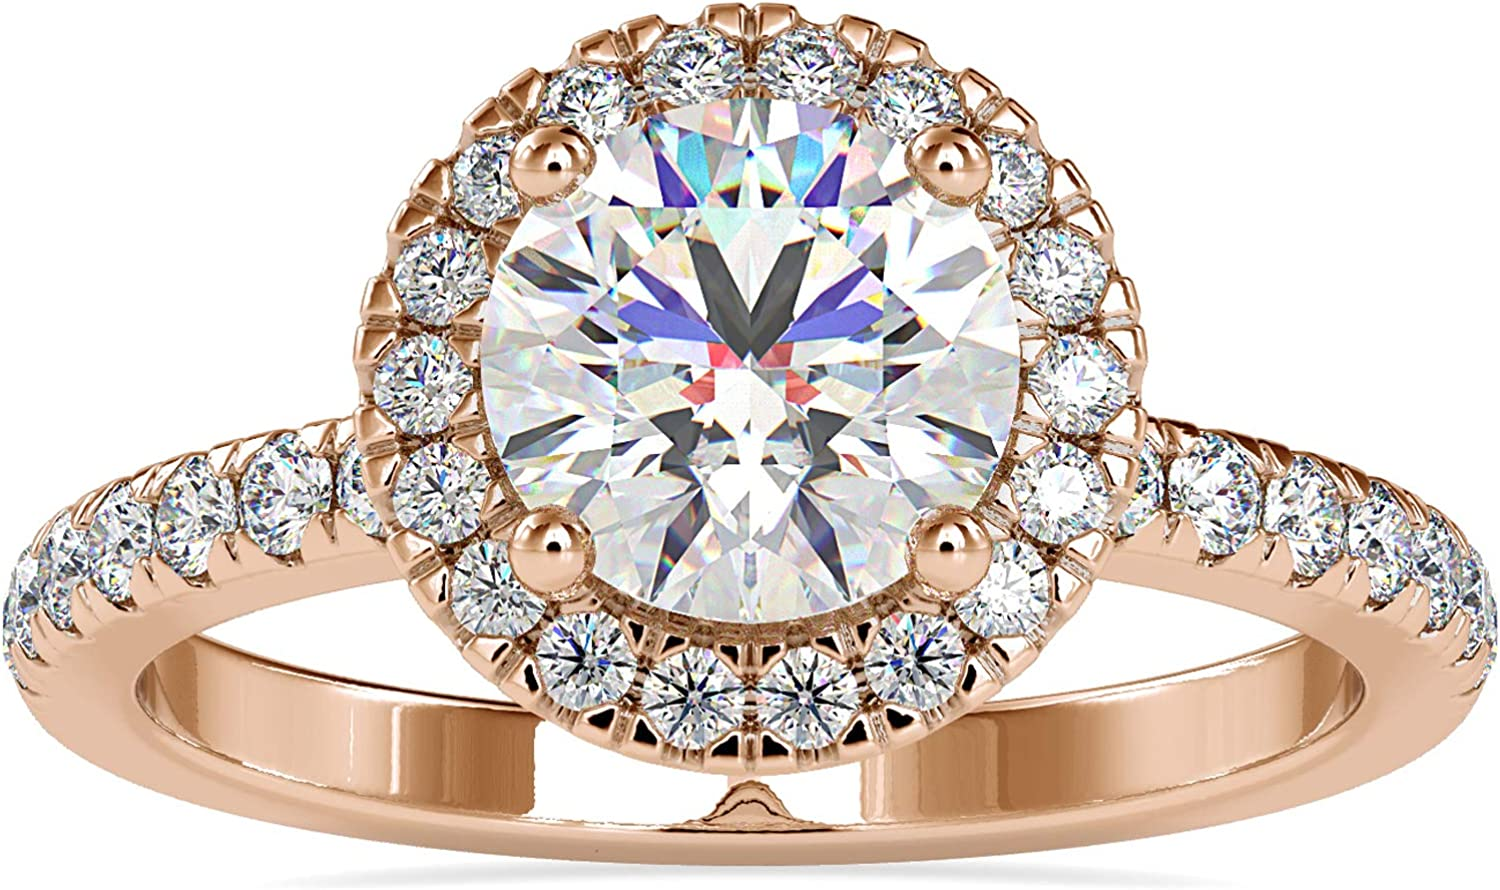 Diamondrensu Moissanite Halo Engagement Ring Bri 1.97 Round 4 years warranty CTW Spring new work one after another